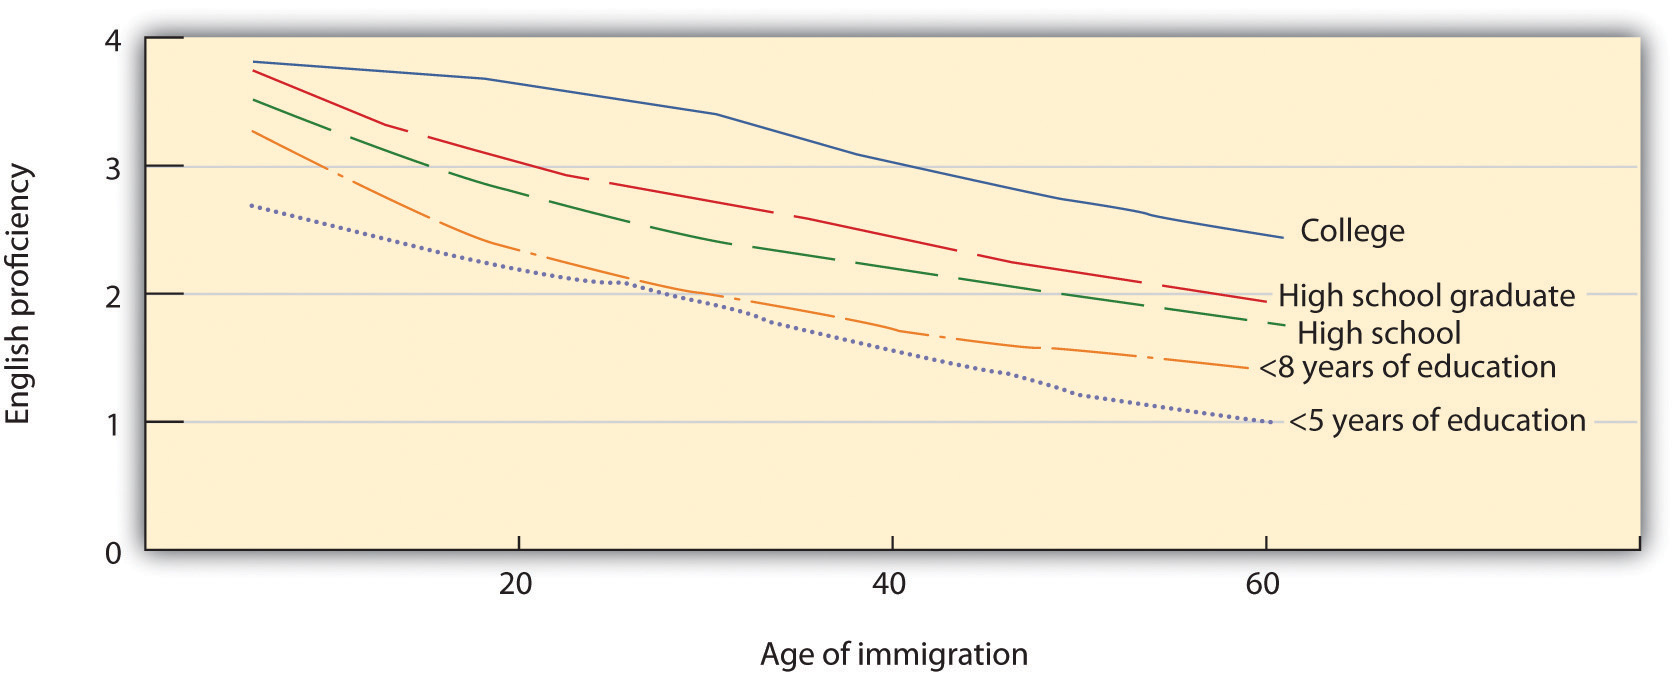 Hakuta, Bialystok, and Wiley (2003) found no evidence for critical periods in language learning. Regardless of level of education, self-reported second-language skills decreased consistently across age of immigration.